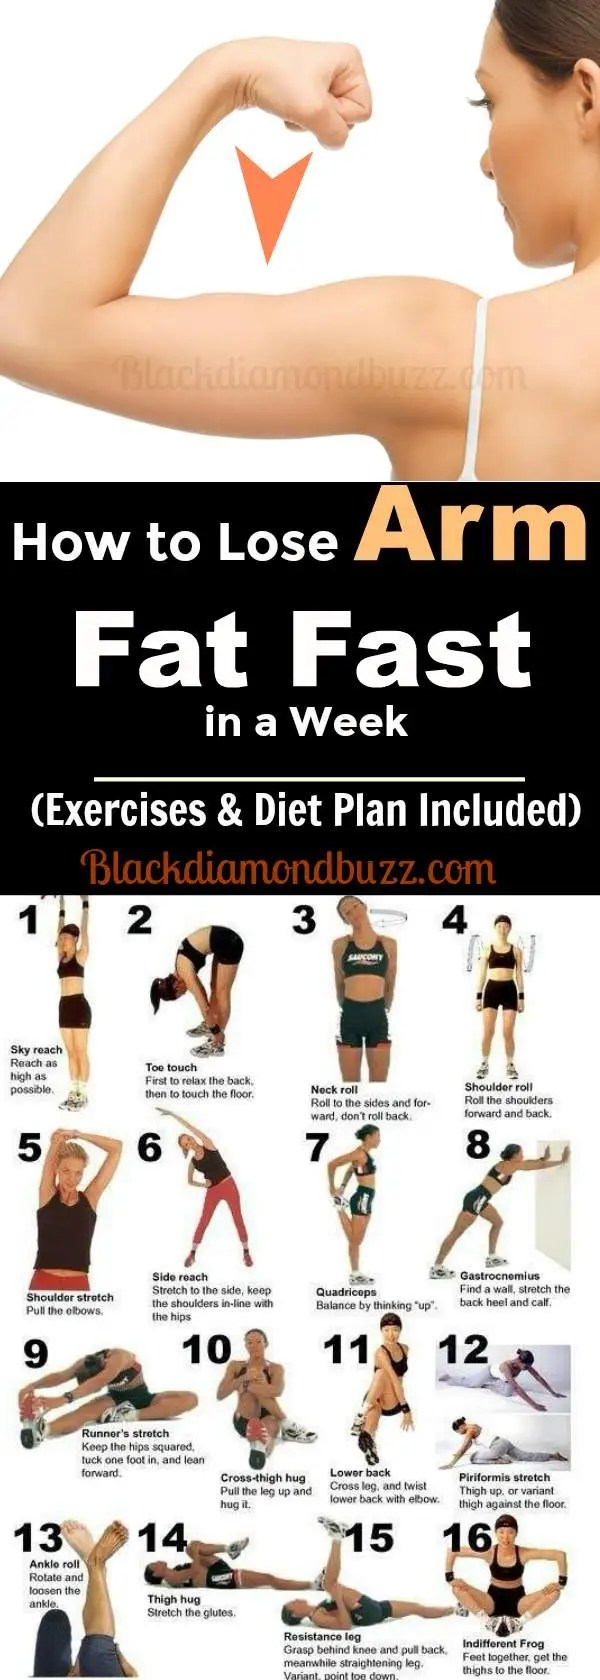 How to Lose Arm Fat Fast in a Week